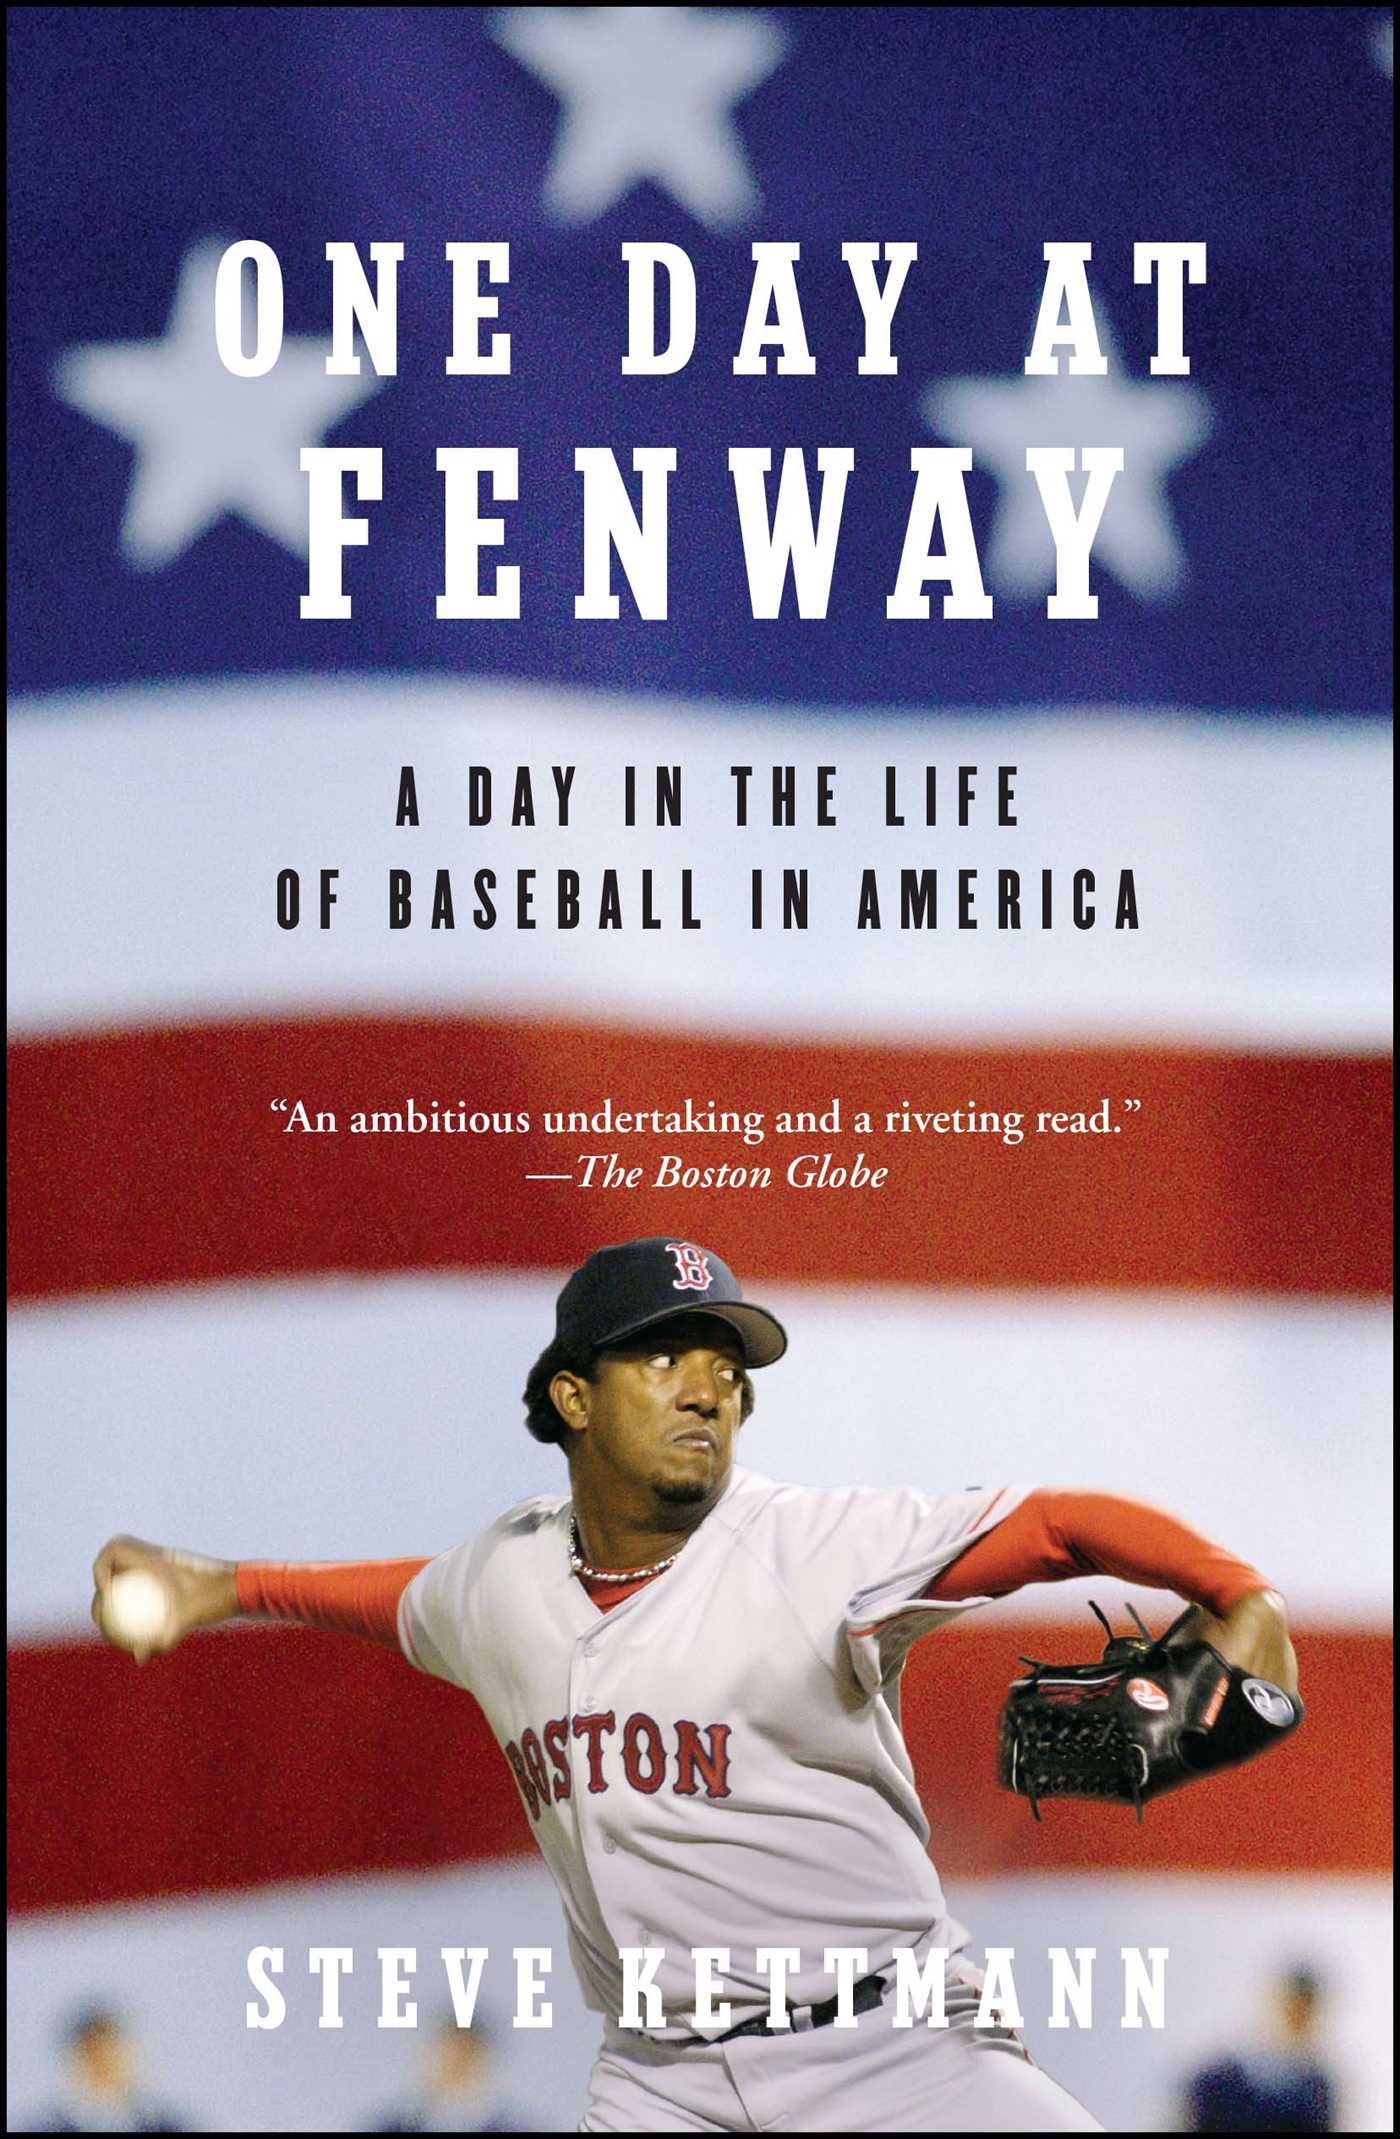 One day at fenway 9780743483667 hr